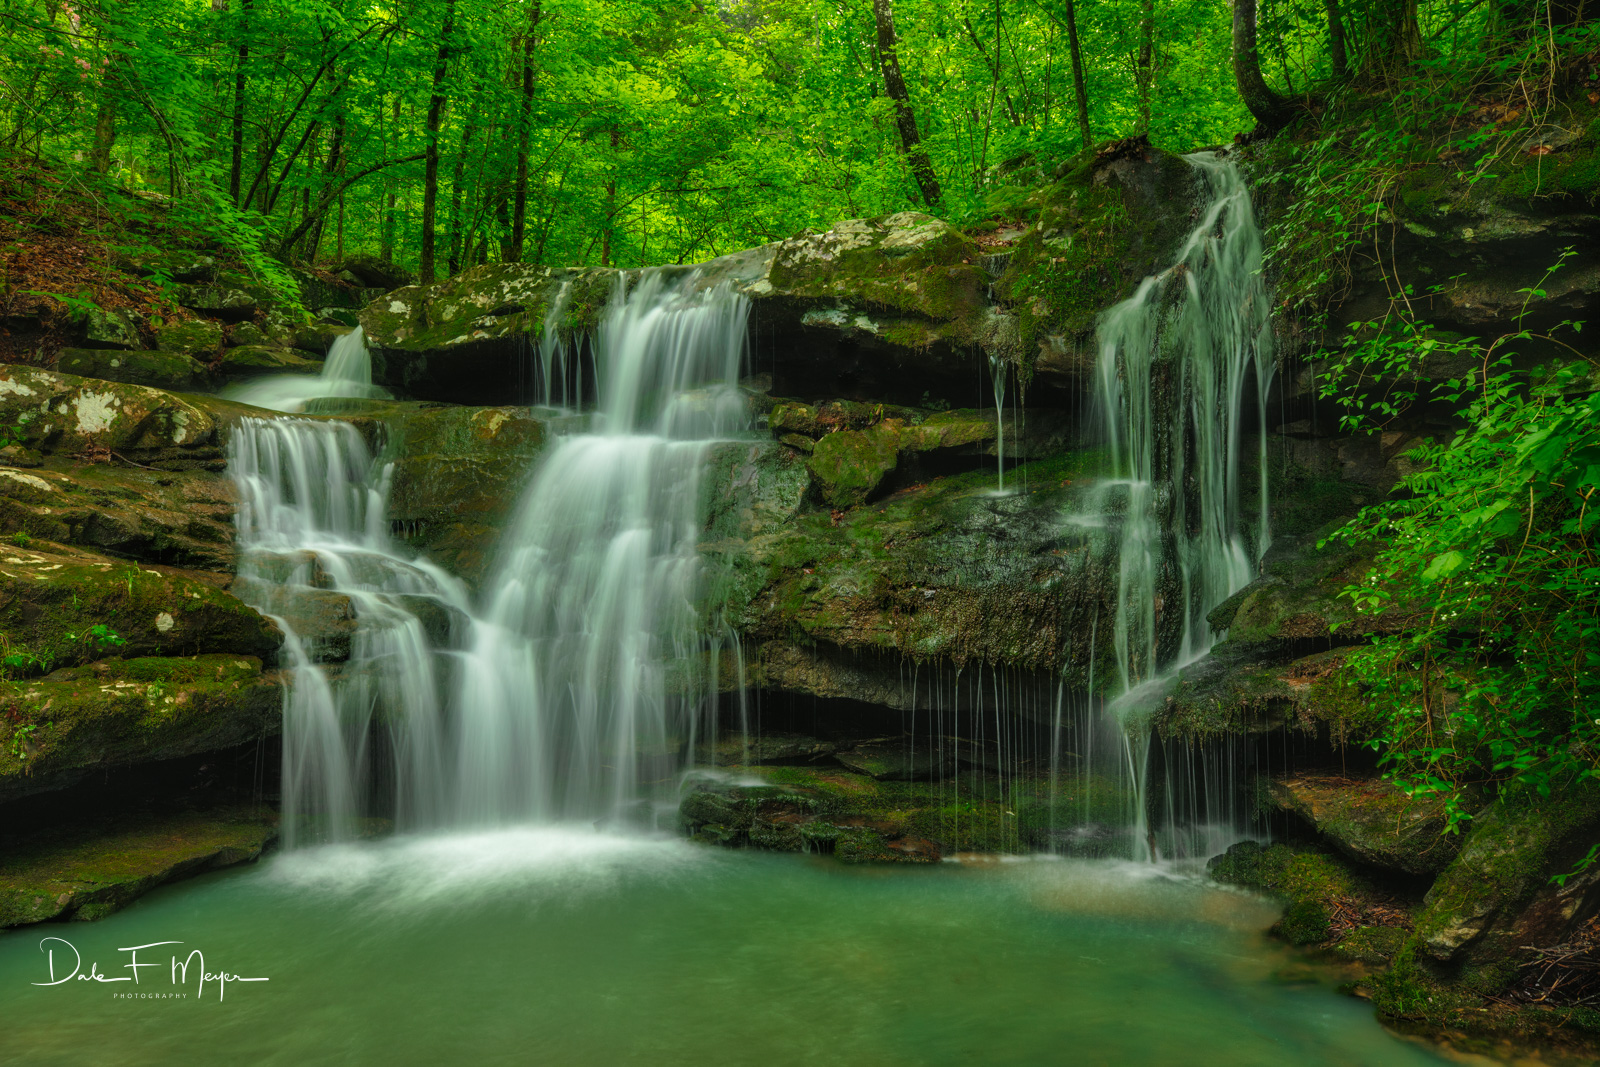 Sometimes in my photographic journey I find a place deep in the wilderness of Arkansas so peaceful that I simply want to sit...